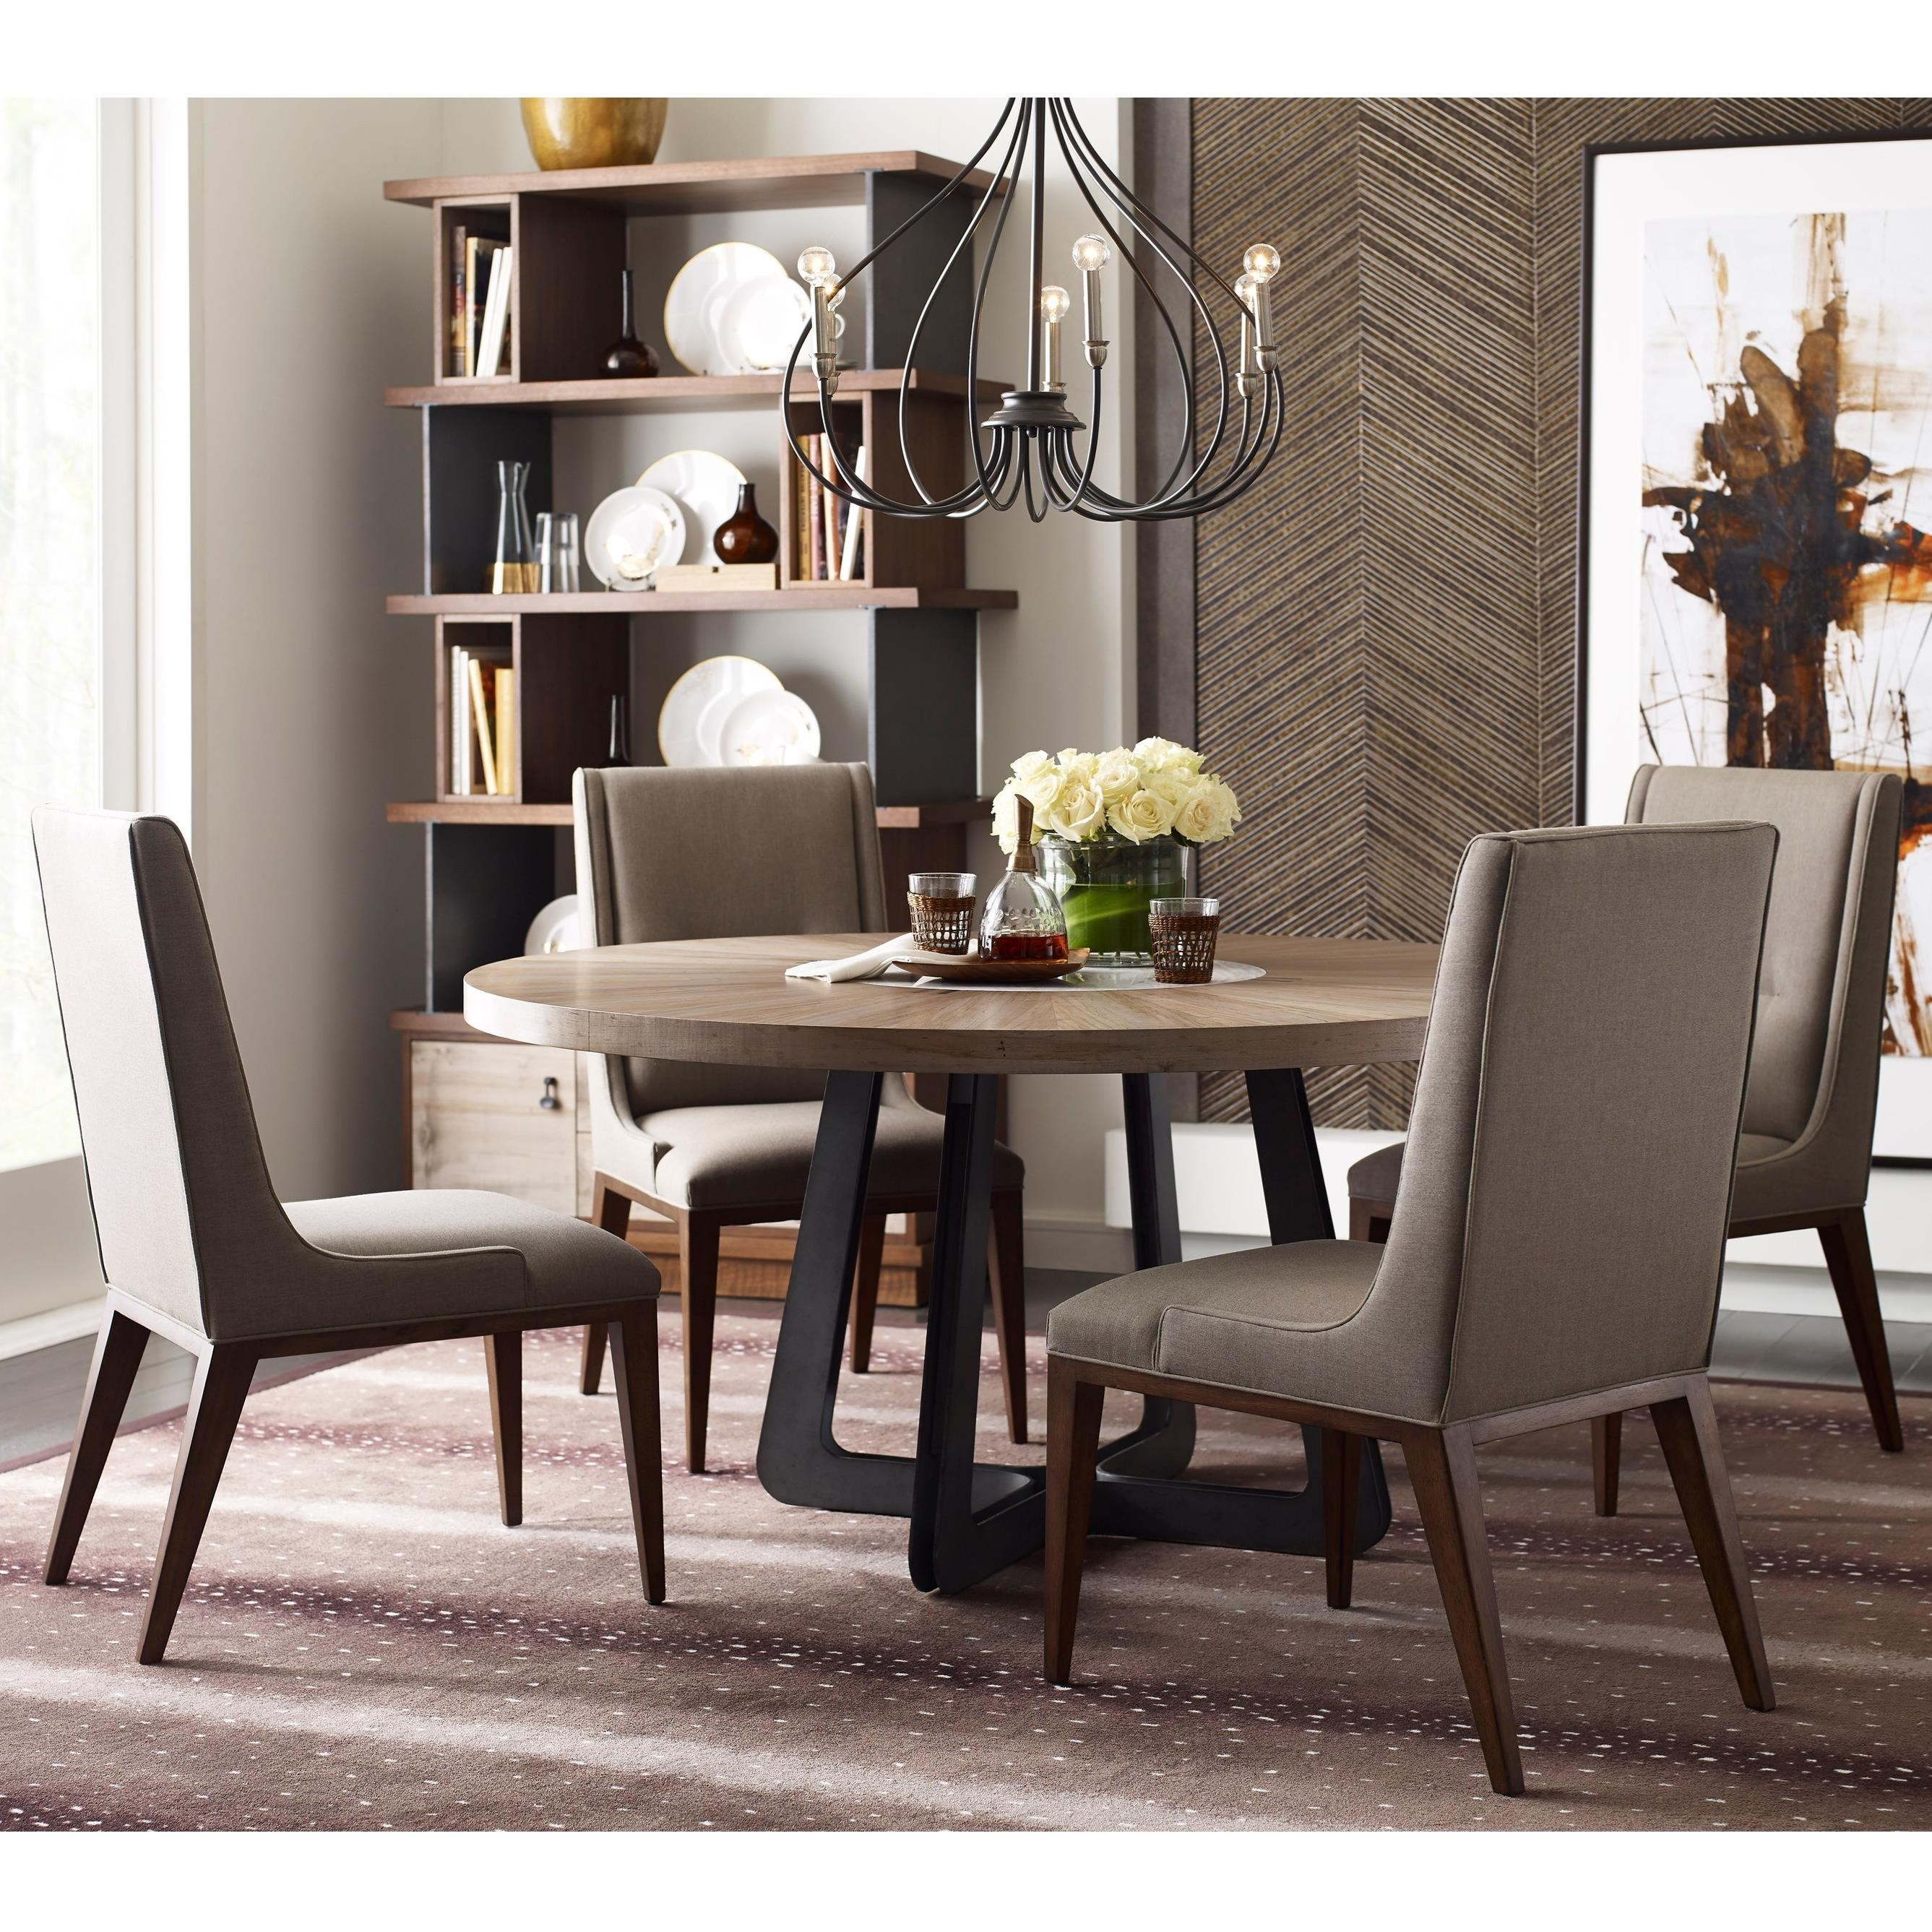 Contemporary Round Table and Chair Upholstered Set